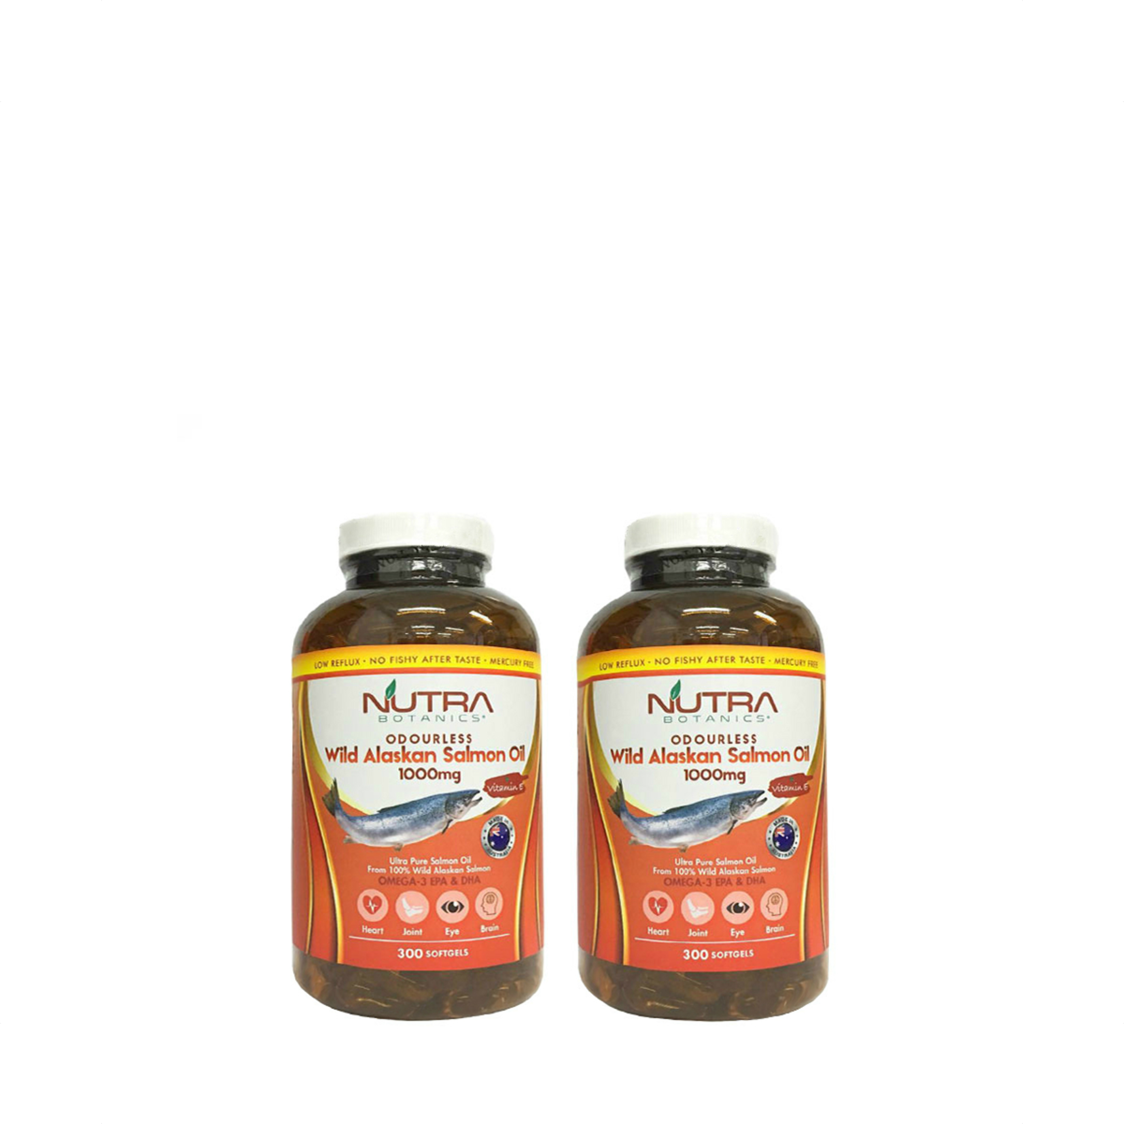 Odourless Omega-3 Wild Alaskan Salmon Fish Oil 1000Mg 2 X 300S Twin Pack